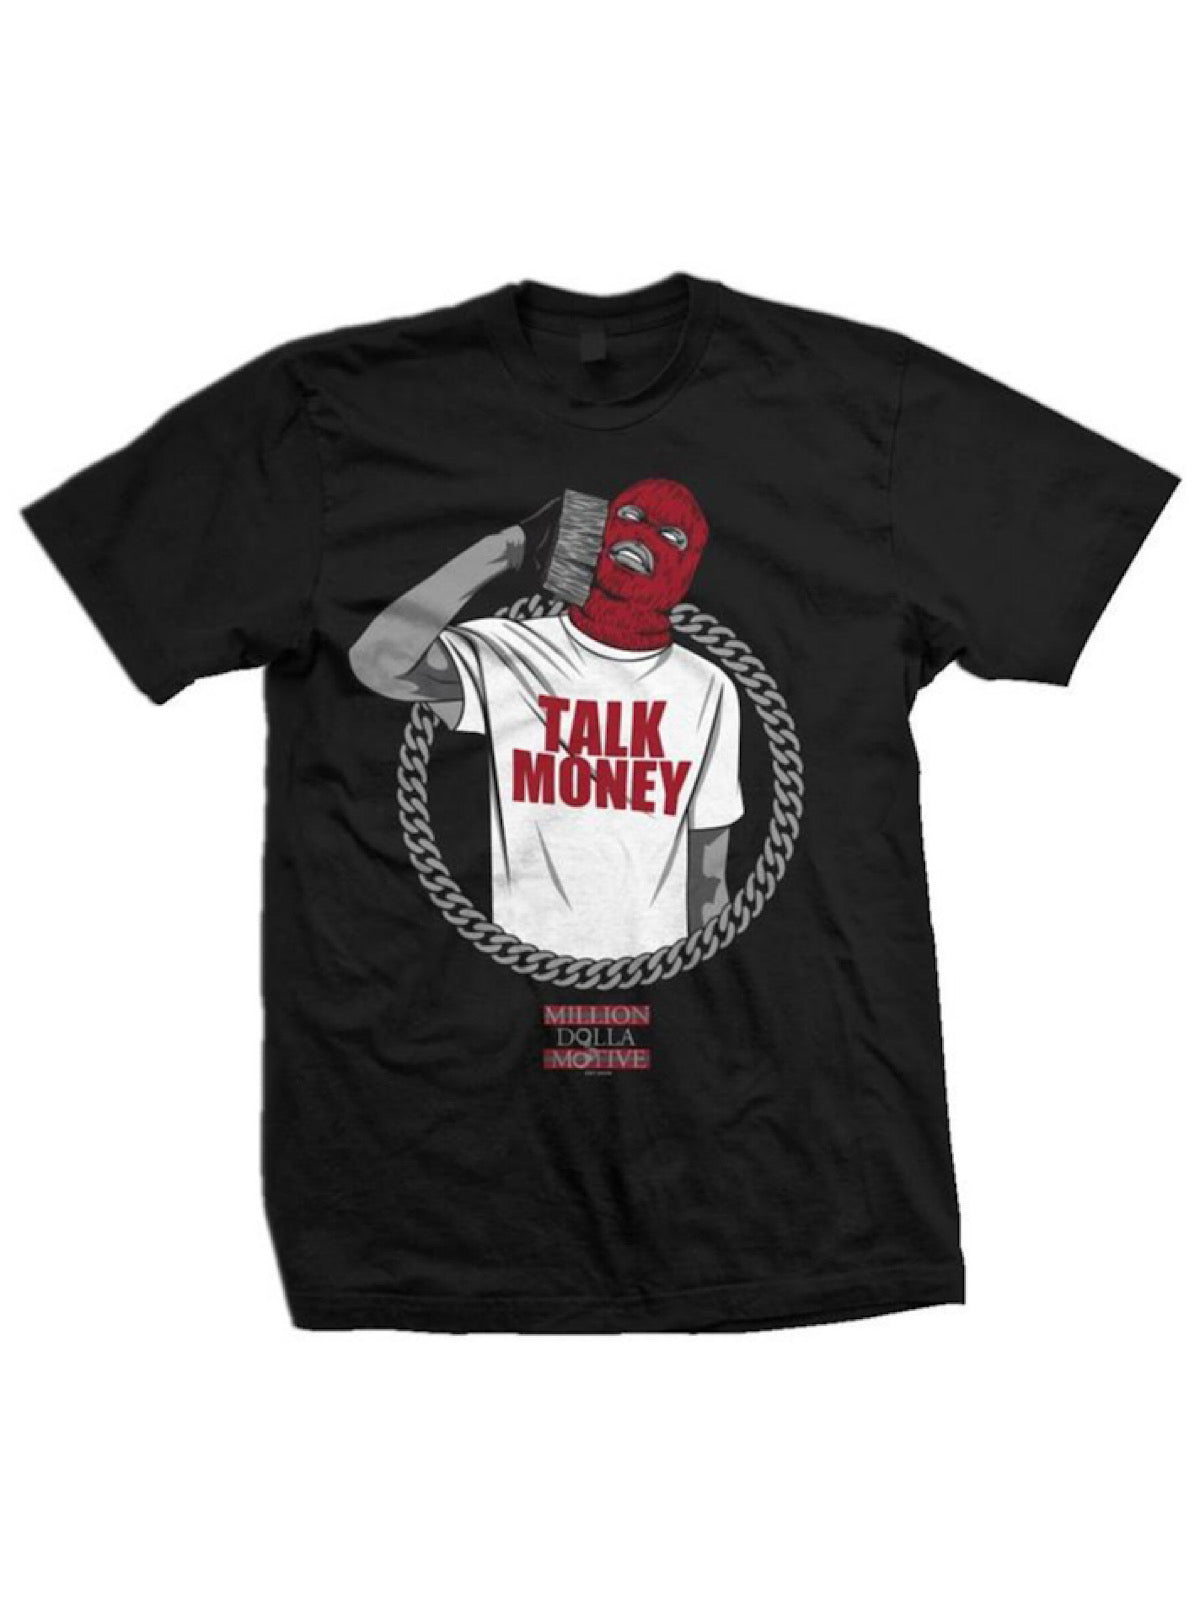 Million Dolla Motive T-Shirt - Talk Money - Black